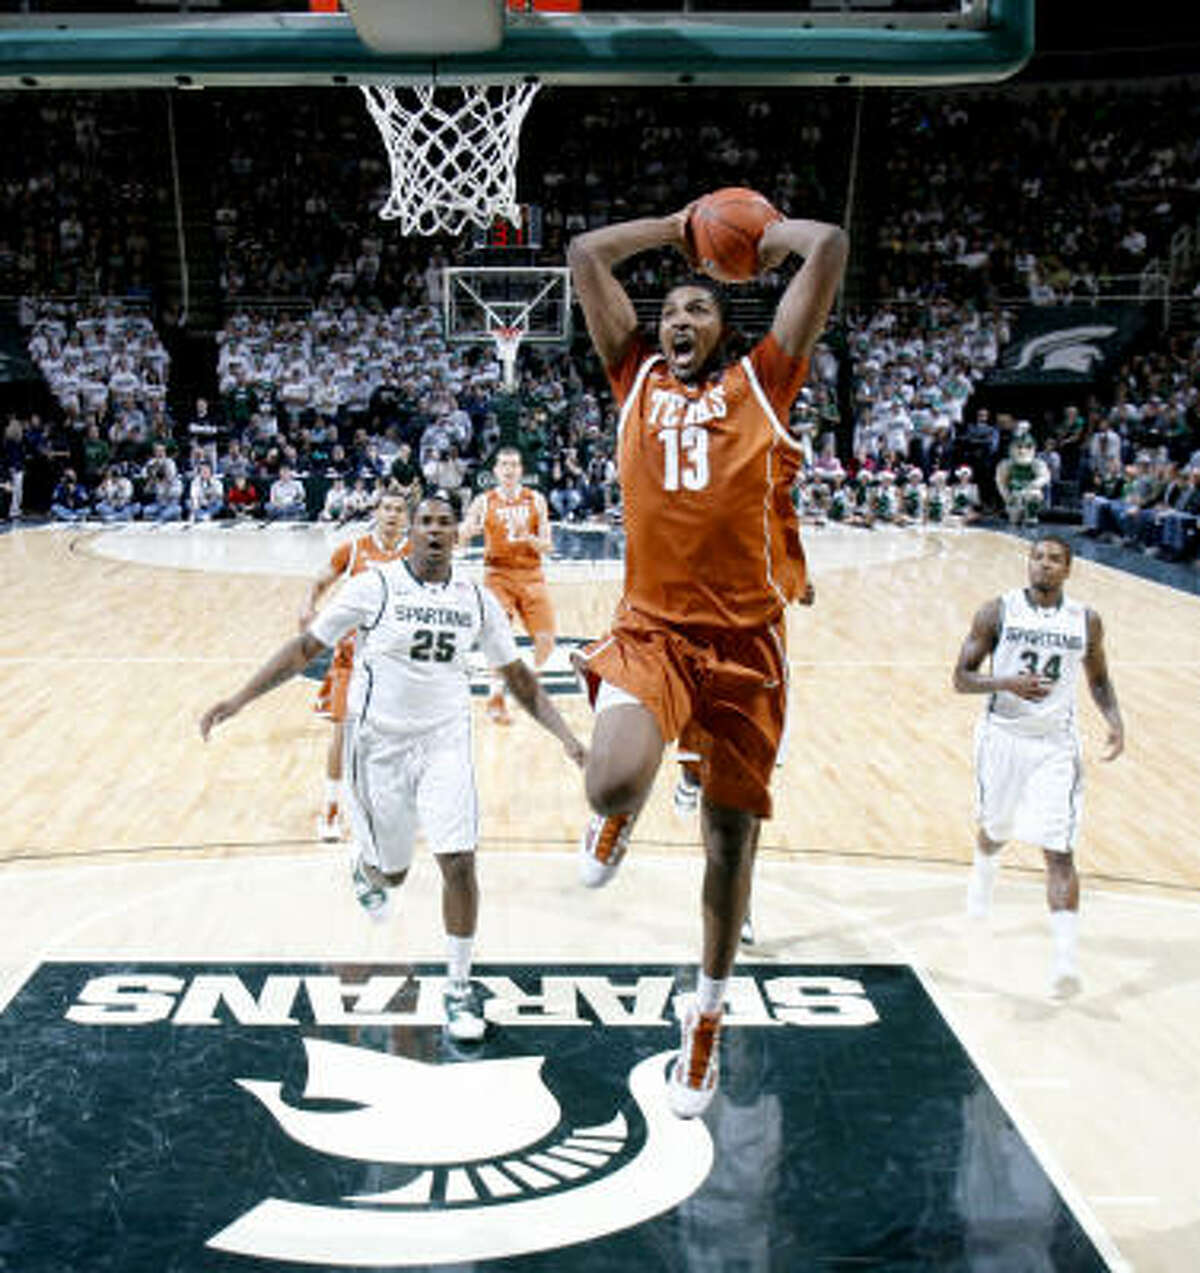 Dec. 22: Texas 67, Michigan State 55 Texas' Tristan Thompson scores on a breakaway dunk in the first half of Wednesday night's game against Michigan State in East Lansing, Mich. Thompson had 17 points and 15 rebounds in the Longhorns' win.